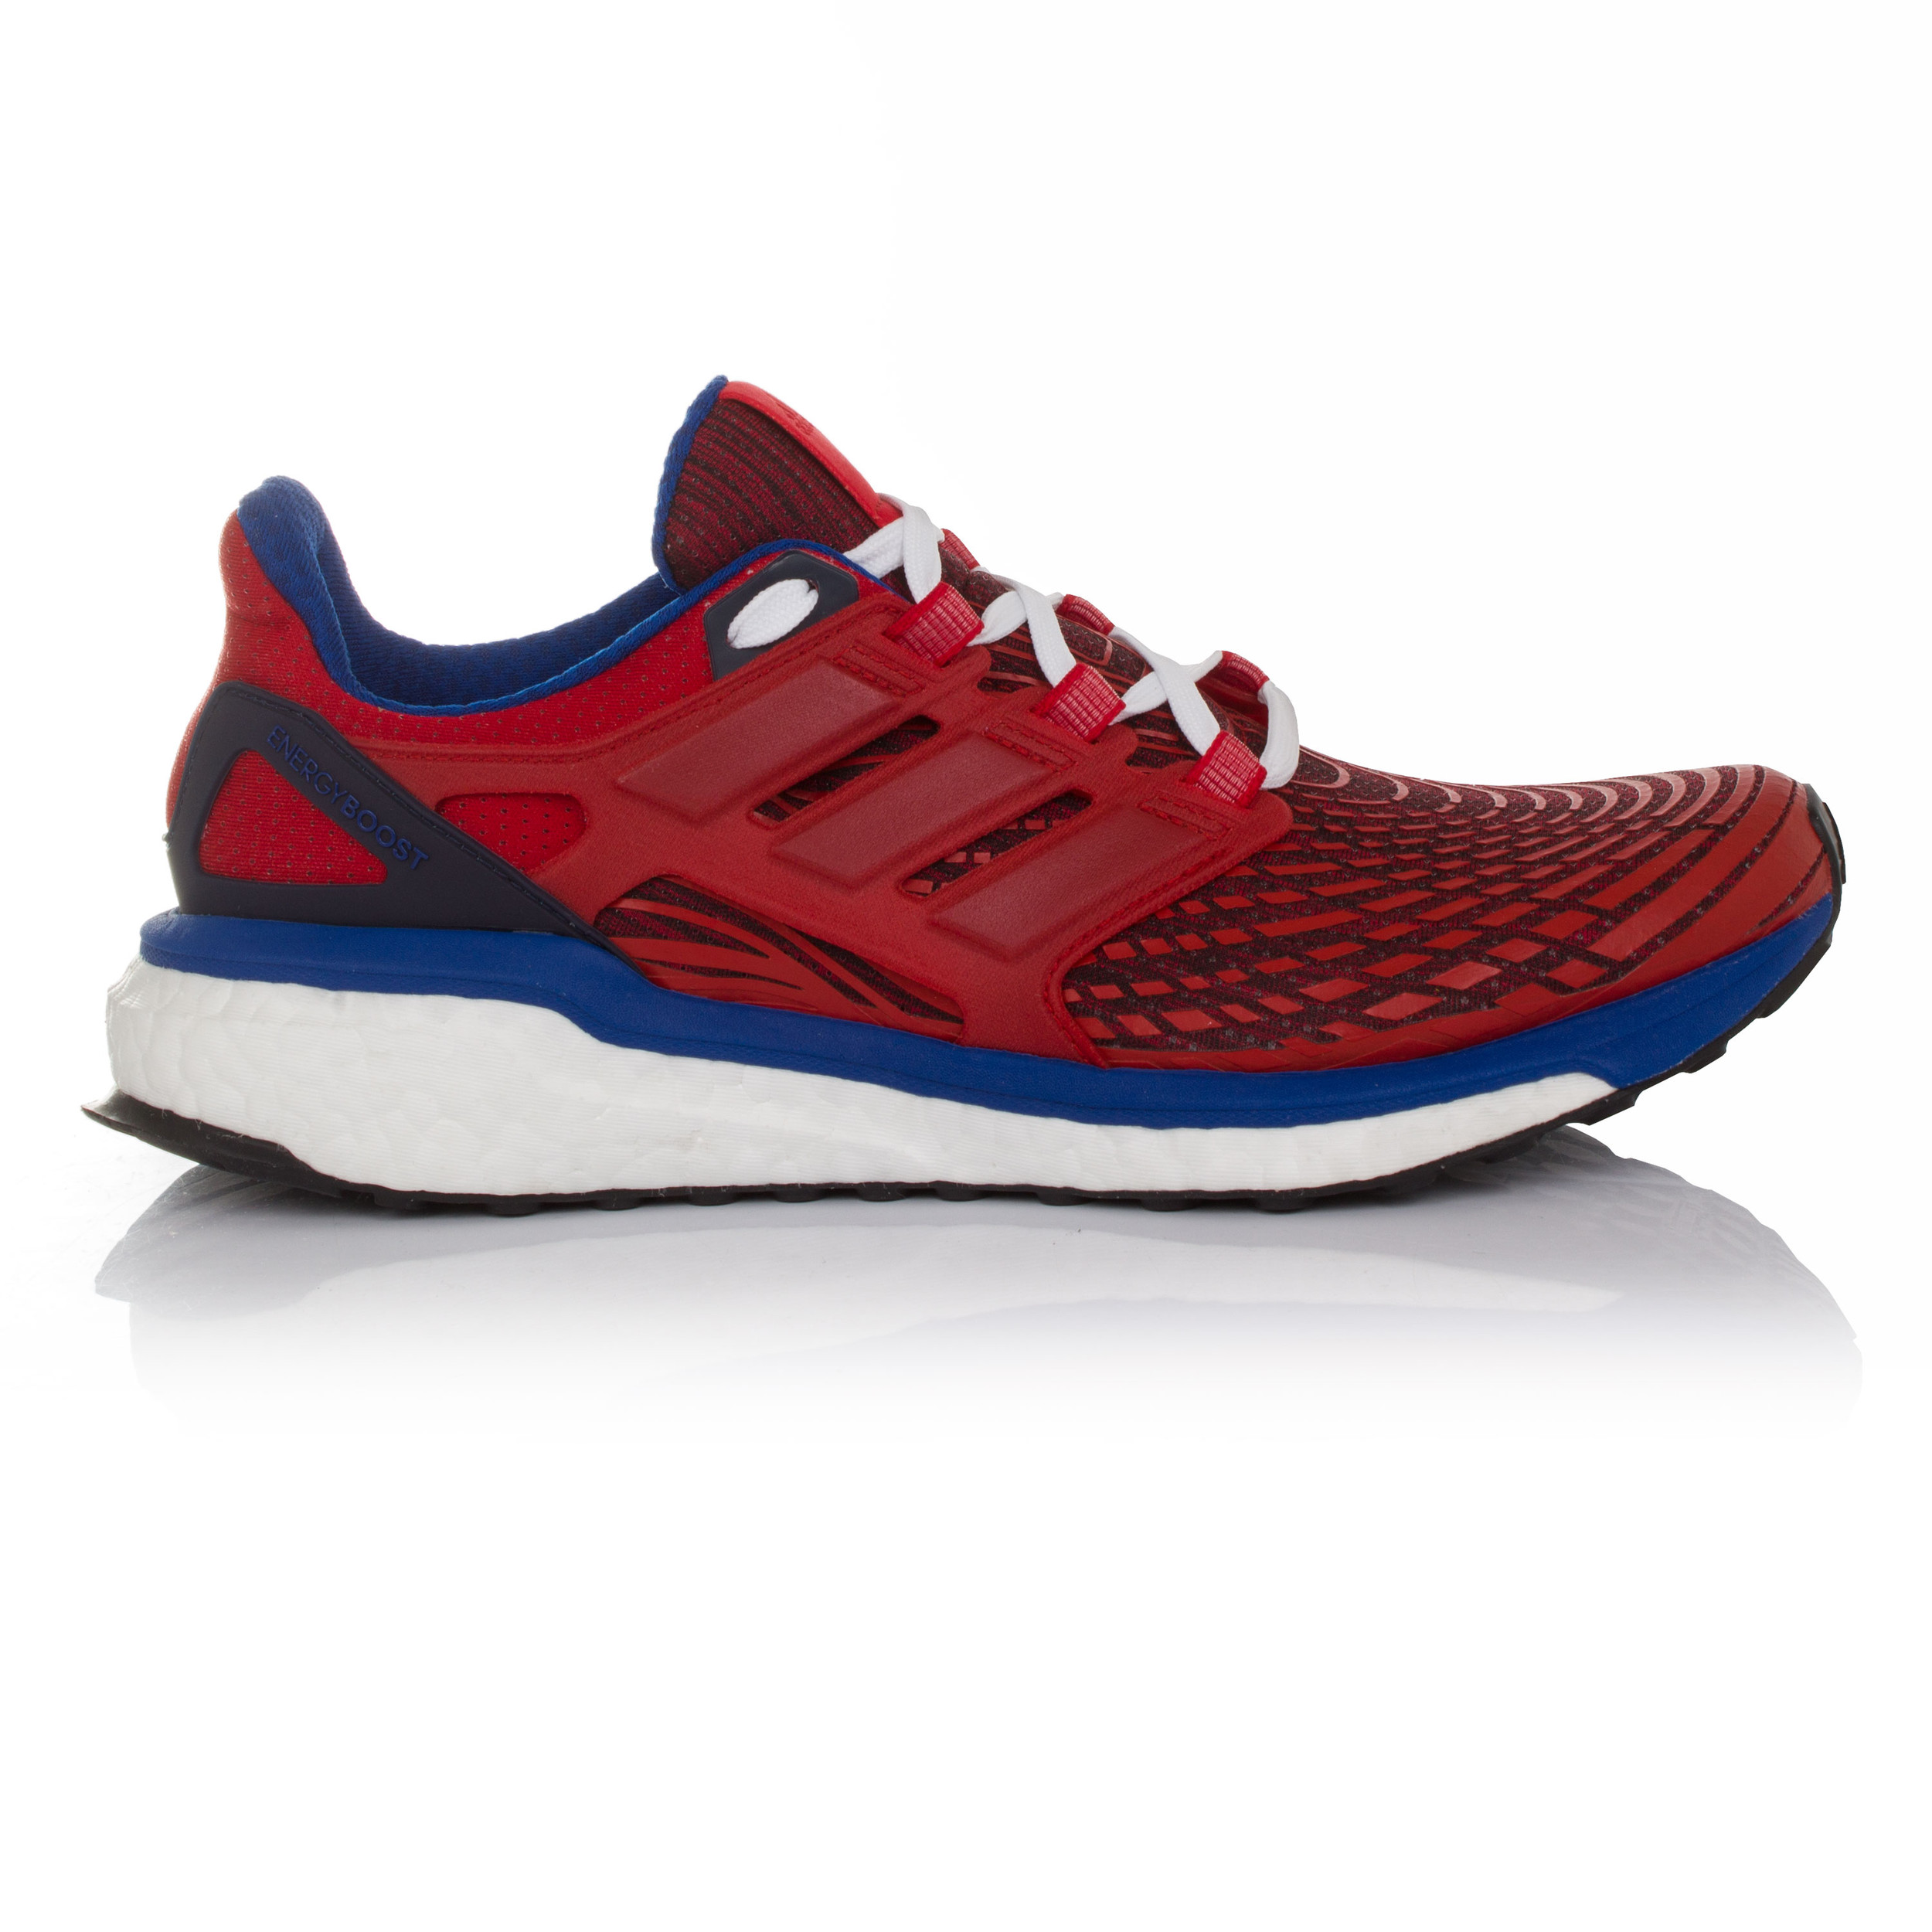 adidas energy boost mens trainers